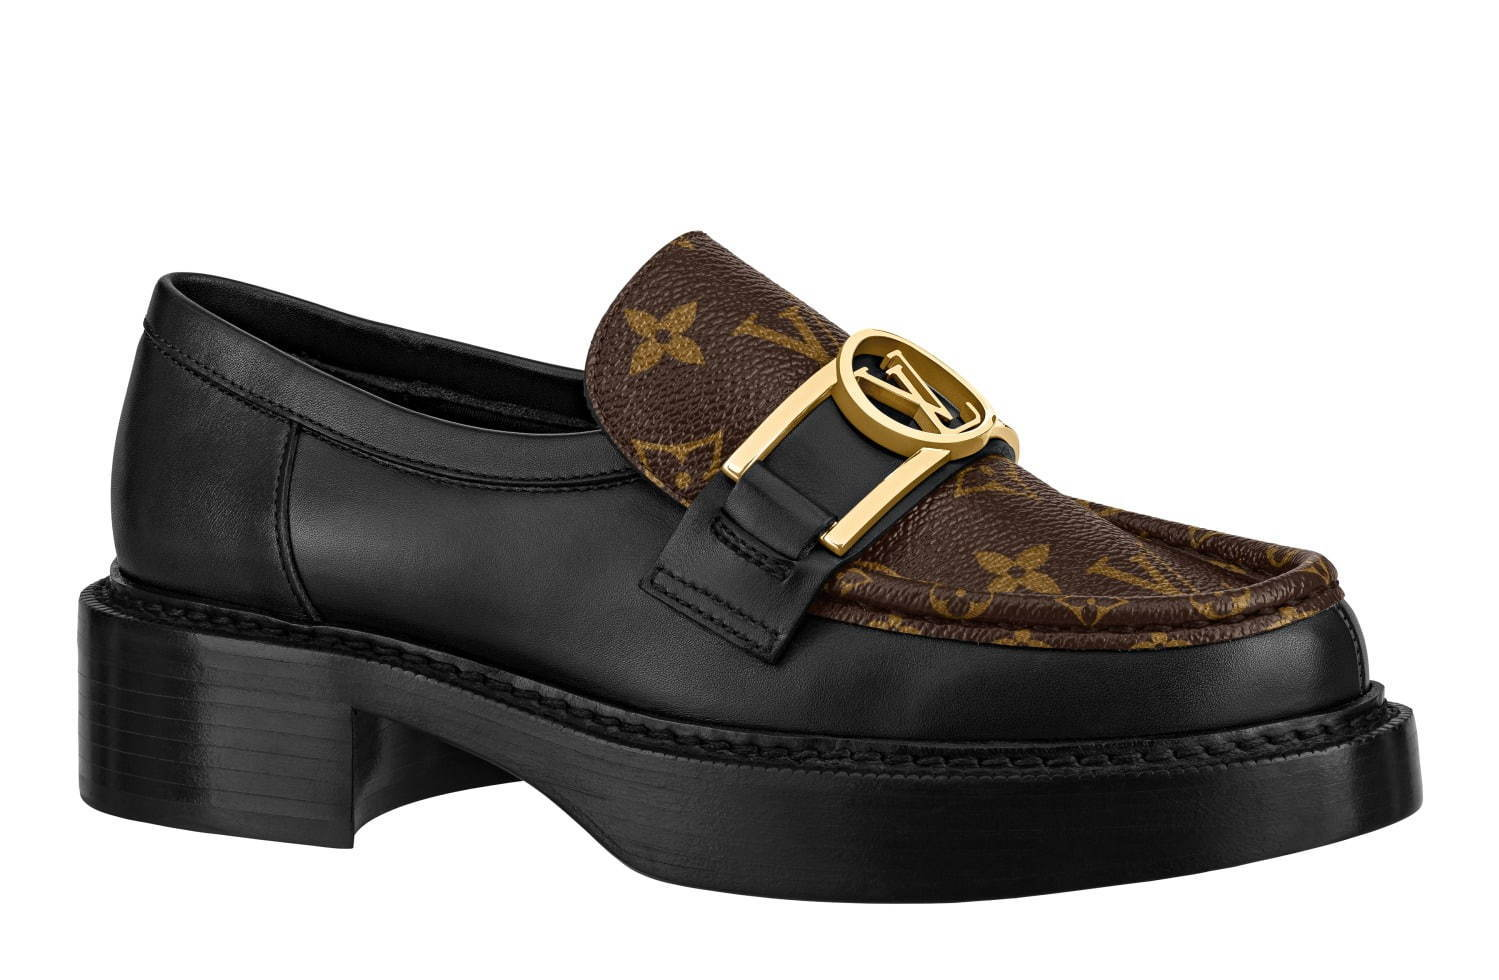 ACADEMY LOAFER(H:2cm) 127,000円